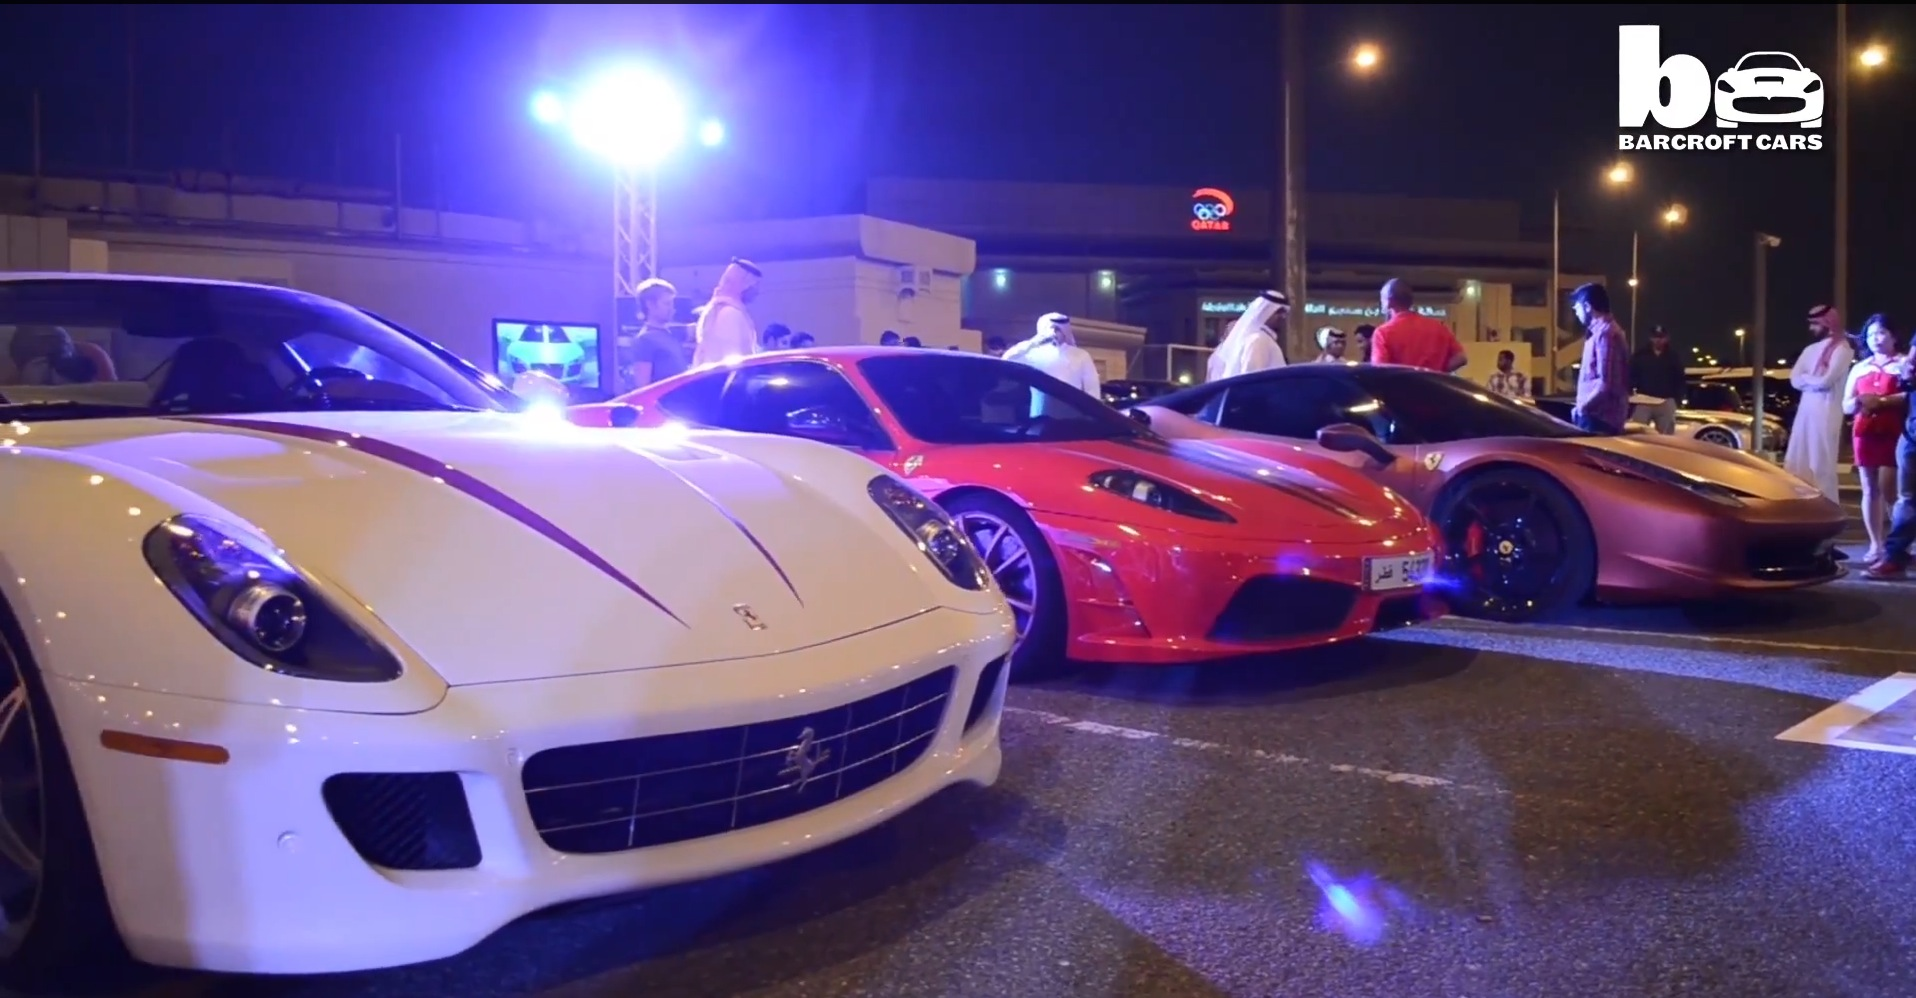 Qatari Youngster Has A Supercar Collection And Organizes Amazing